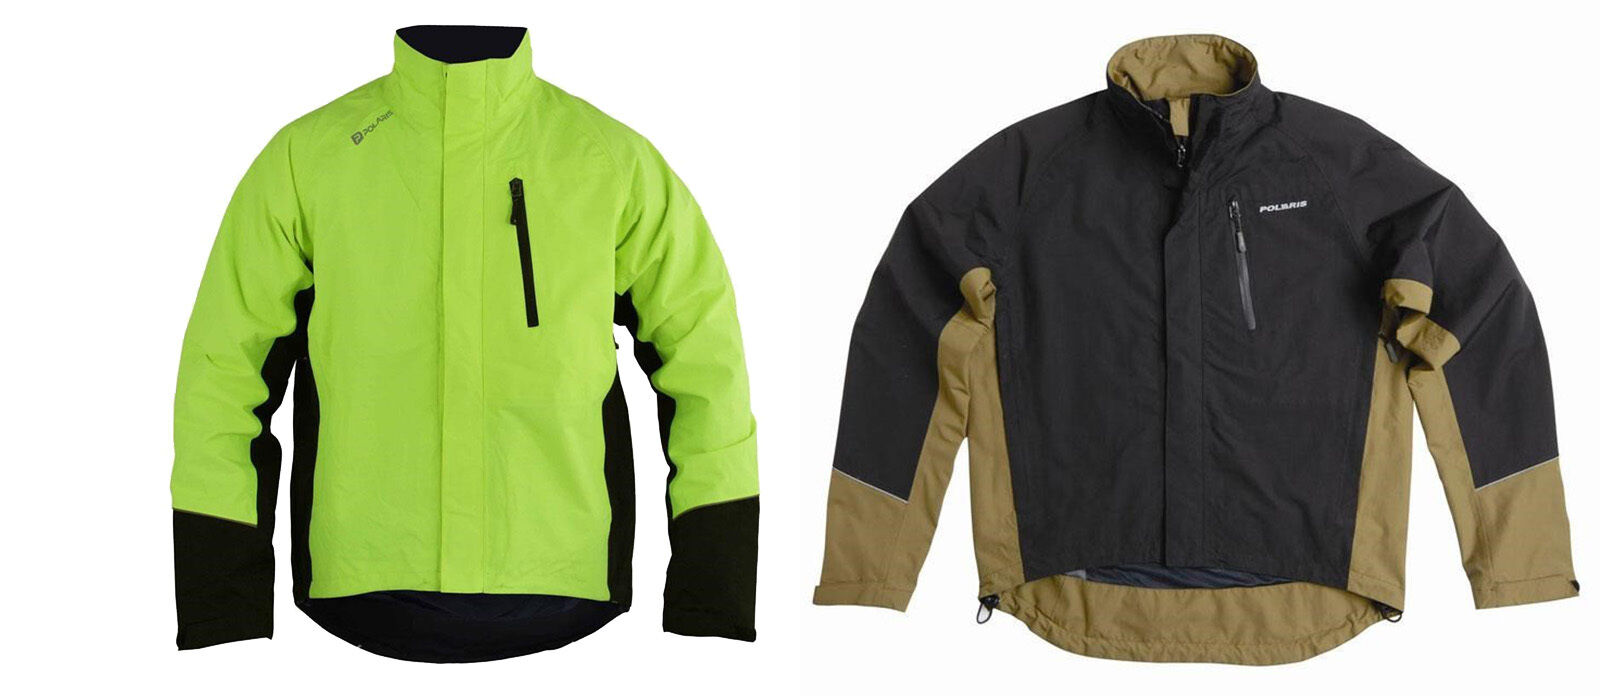 NEW POLARIS RUSH BREATHABLE WATERPROOF LINED CYCLE CYCLING JACKET - 2 COLOURS